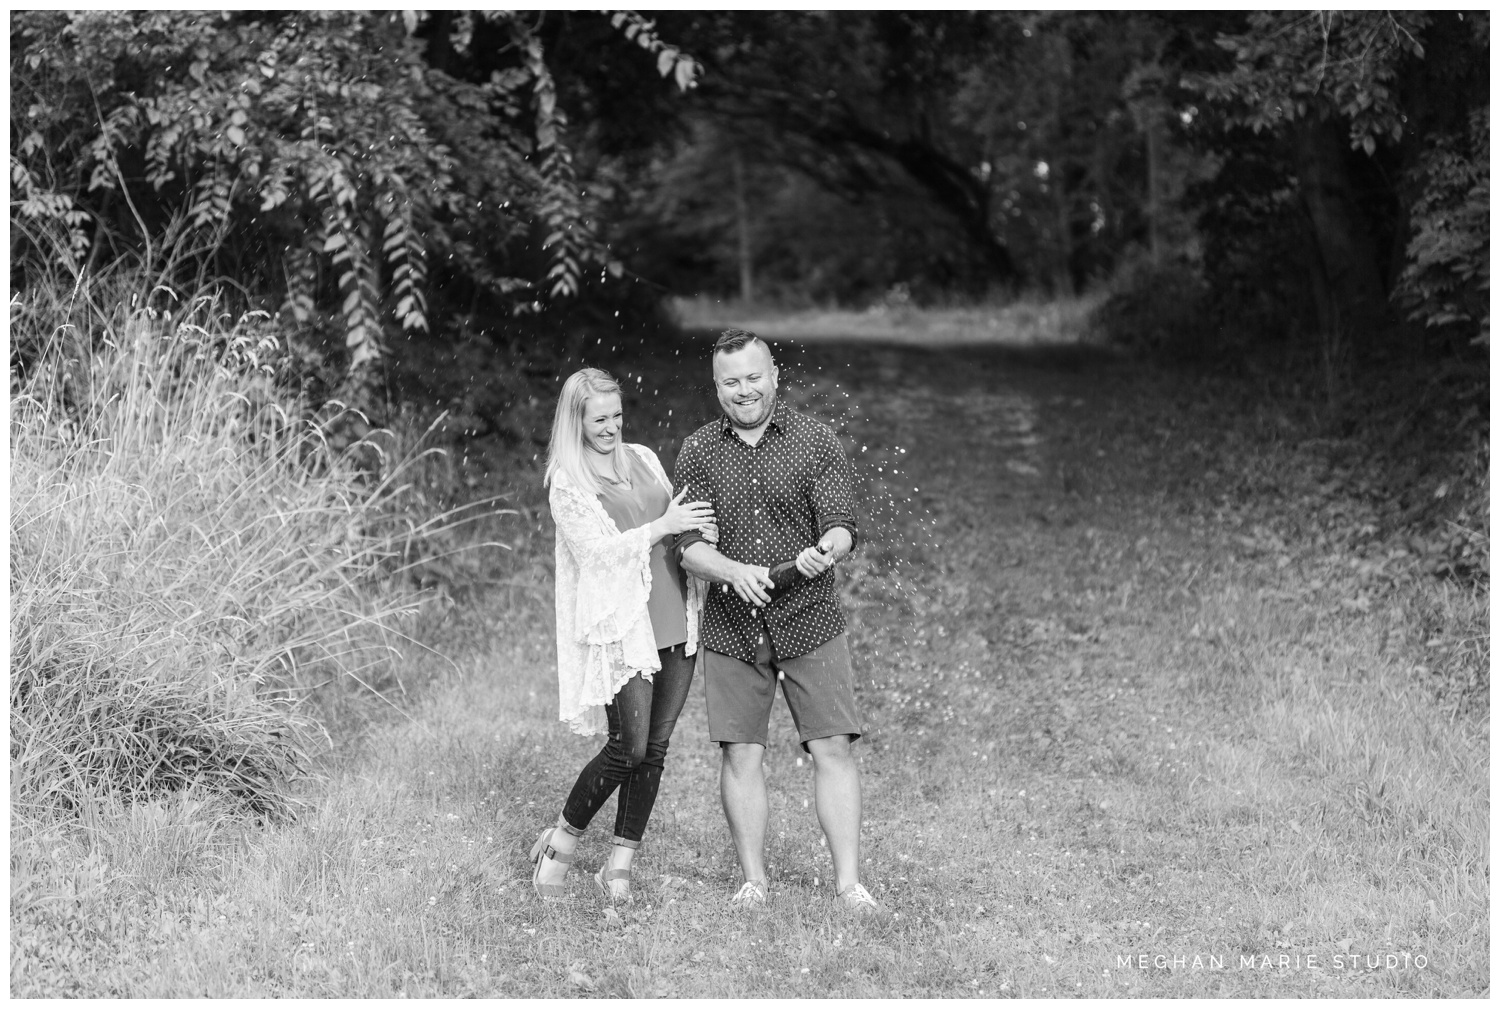 meghan marie studio ohio dayton troy photographer wedding photography engagement alex kaila family honeycreek preserve champagne downtown courthouse urban rural earth toned nature woods barn country city stone fountain elegant_0480.jpg